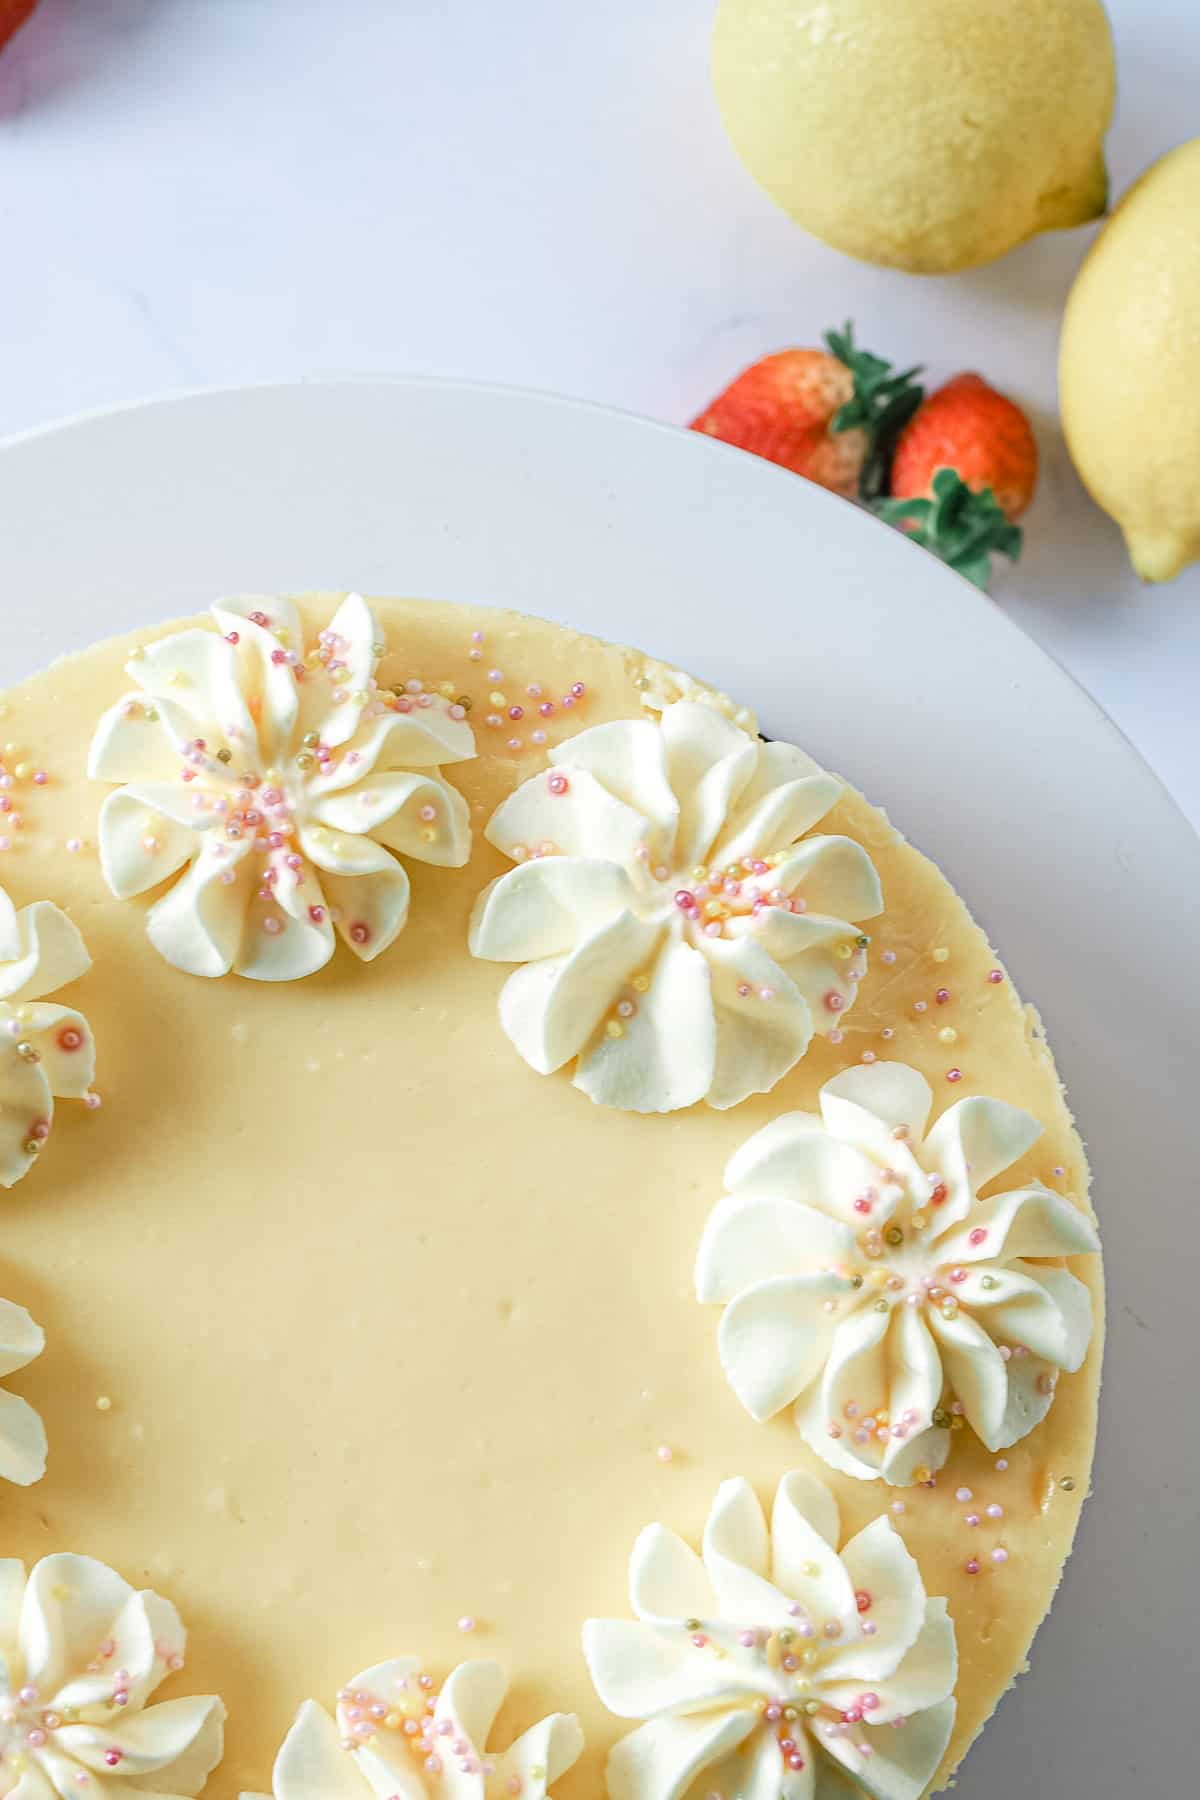 Close up of a round cheesecake with piped cream topping and sprinkles